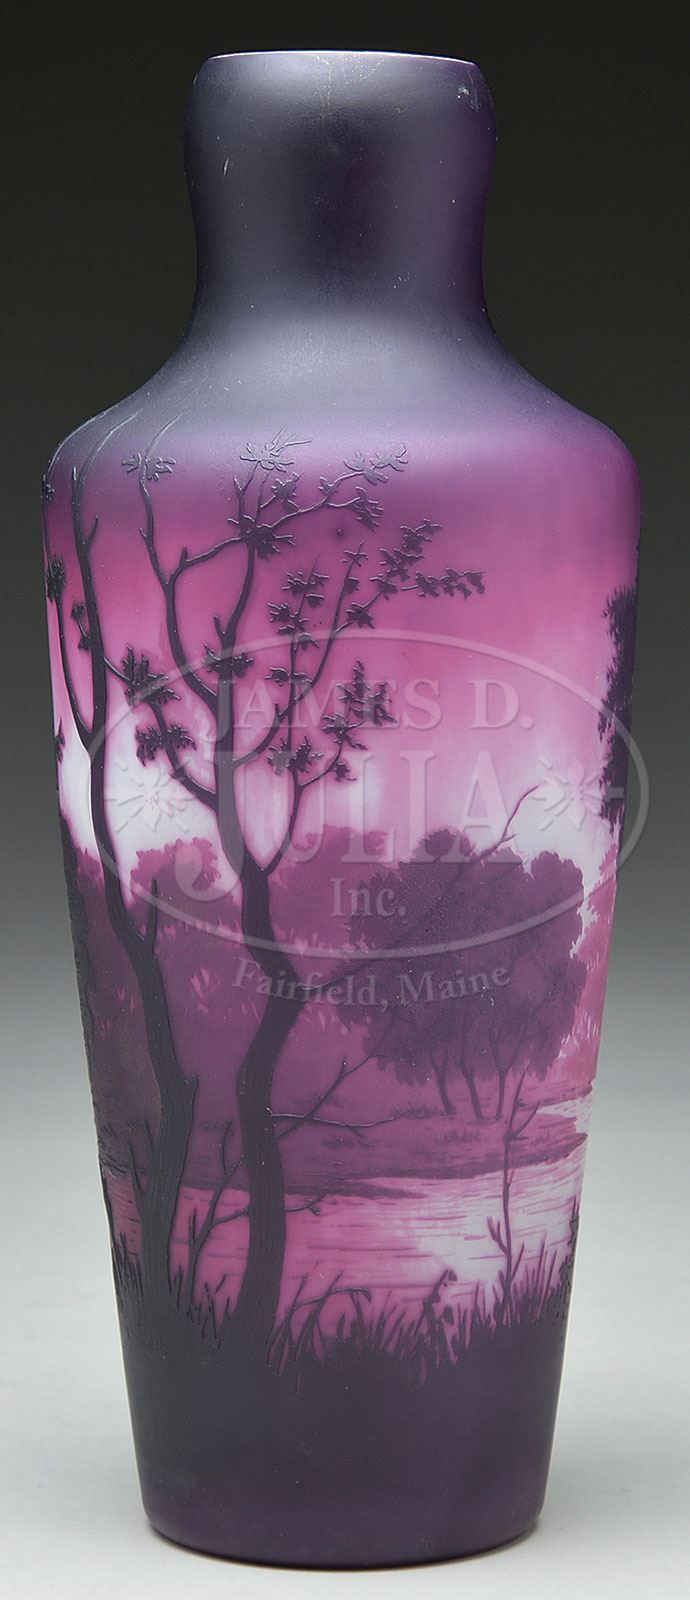 551 best antiquevintage glass vase images on pinterest glass dargental cameo vase unusual cameo vase is decorated in vibrant purple rouge and pink on a white ground and shows a scene with large deciduous trees in reviewsmspy